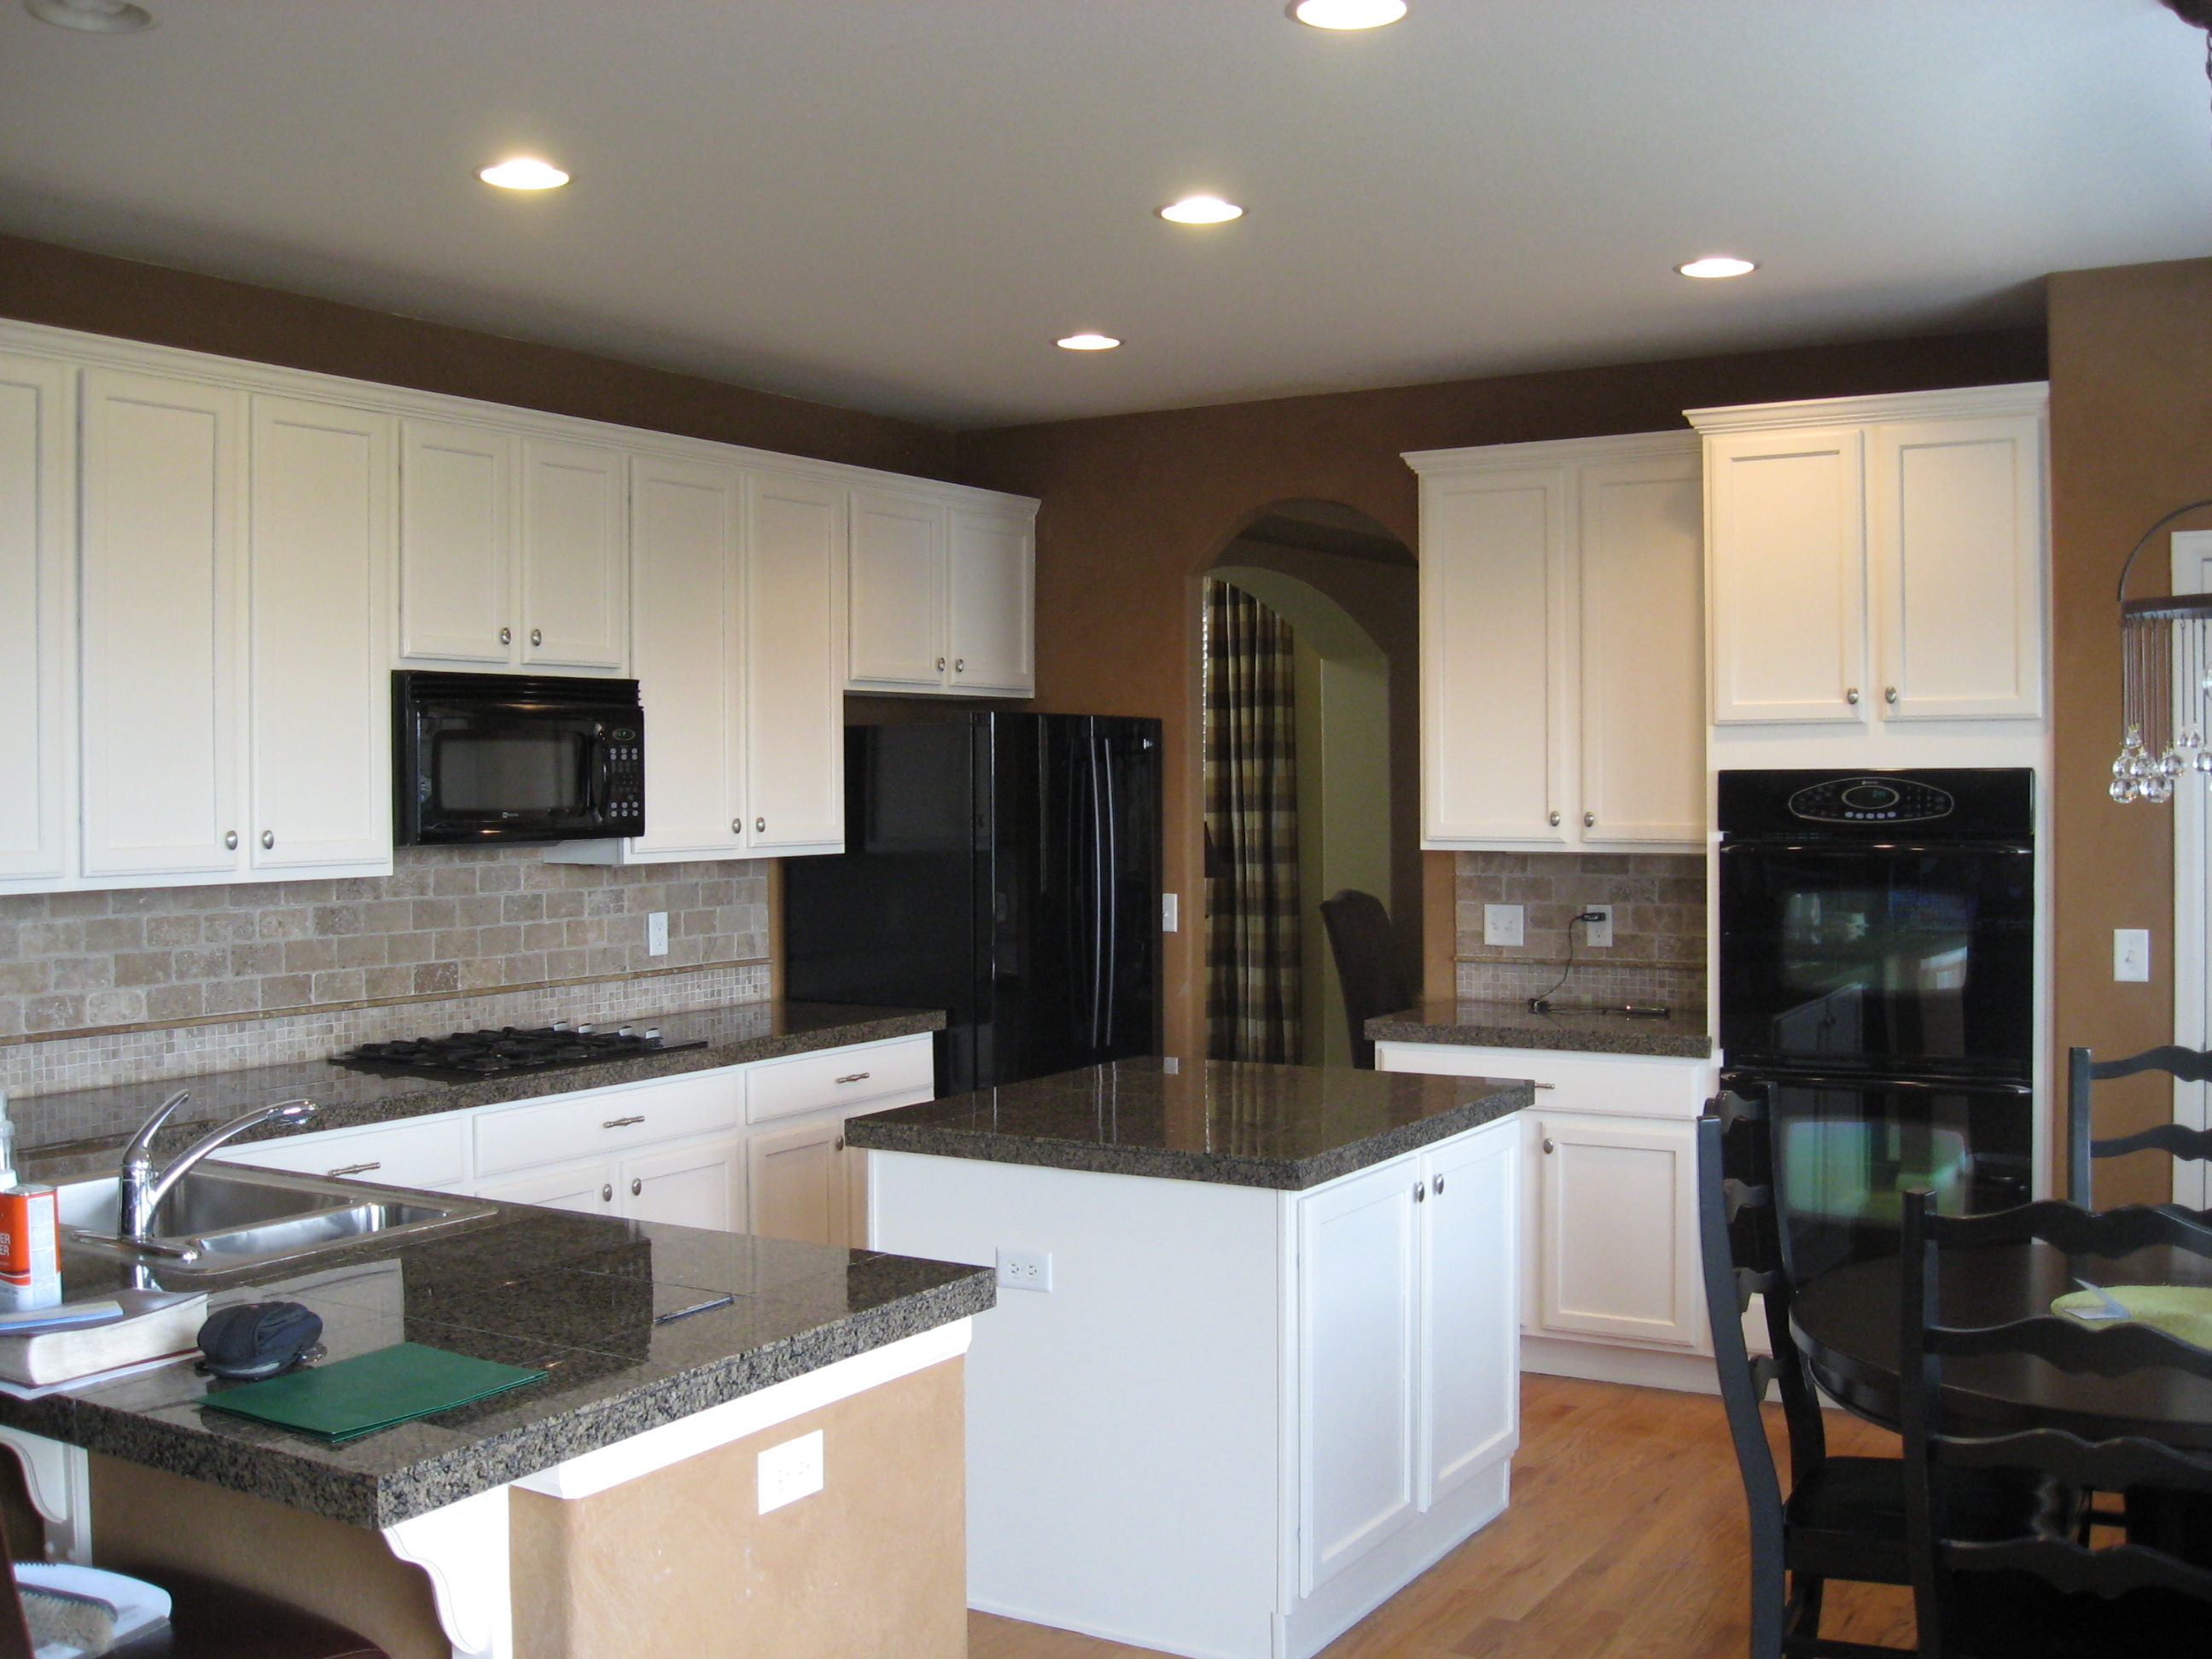 can we paint kitchen cabinets 7 ways increasing home values eco paint inc 13210